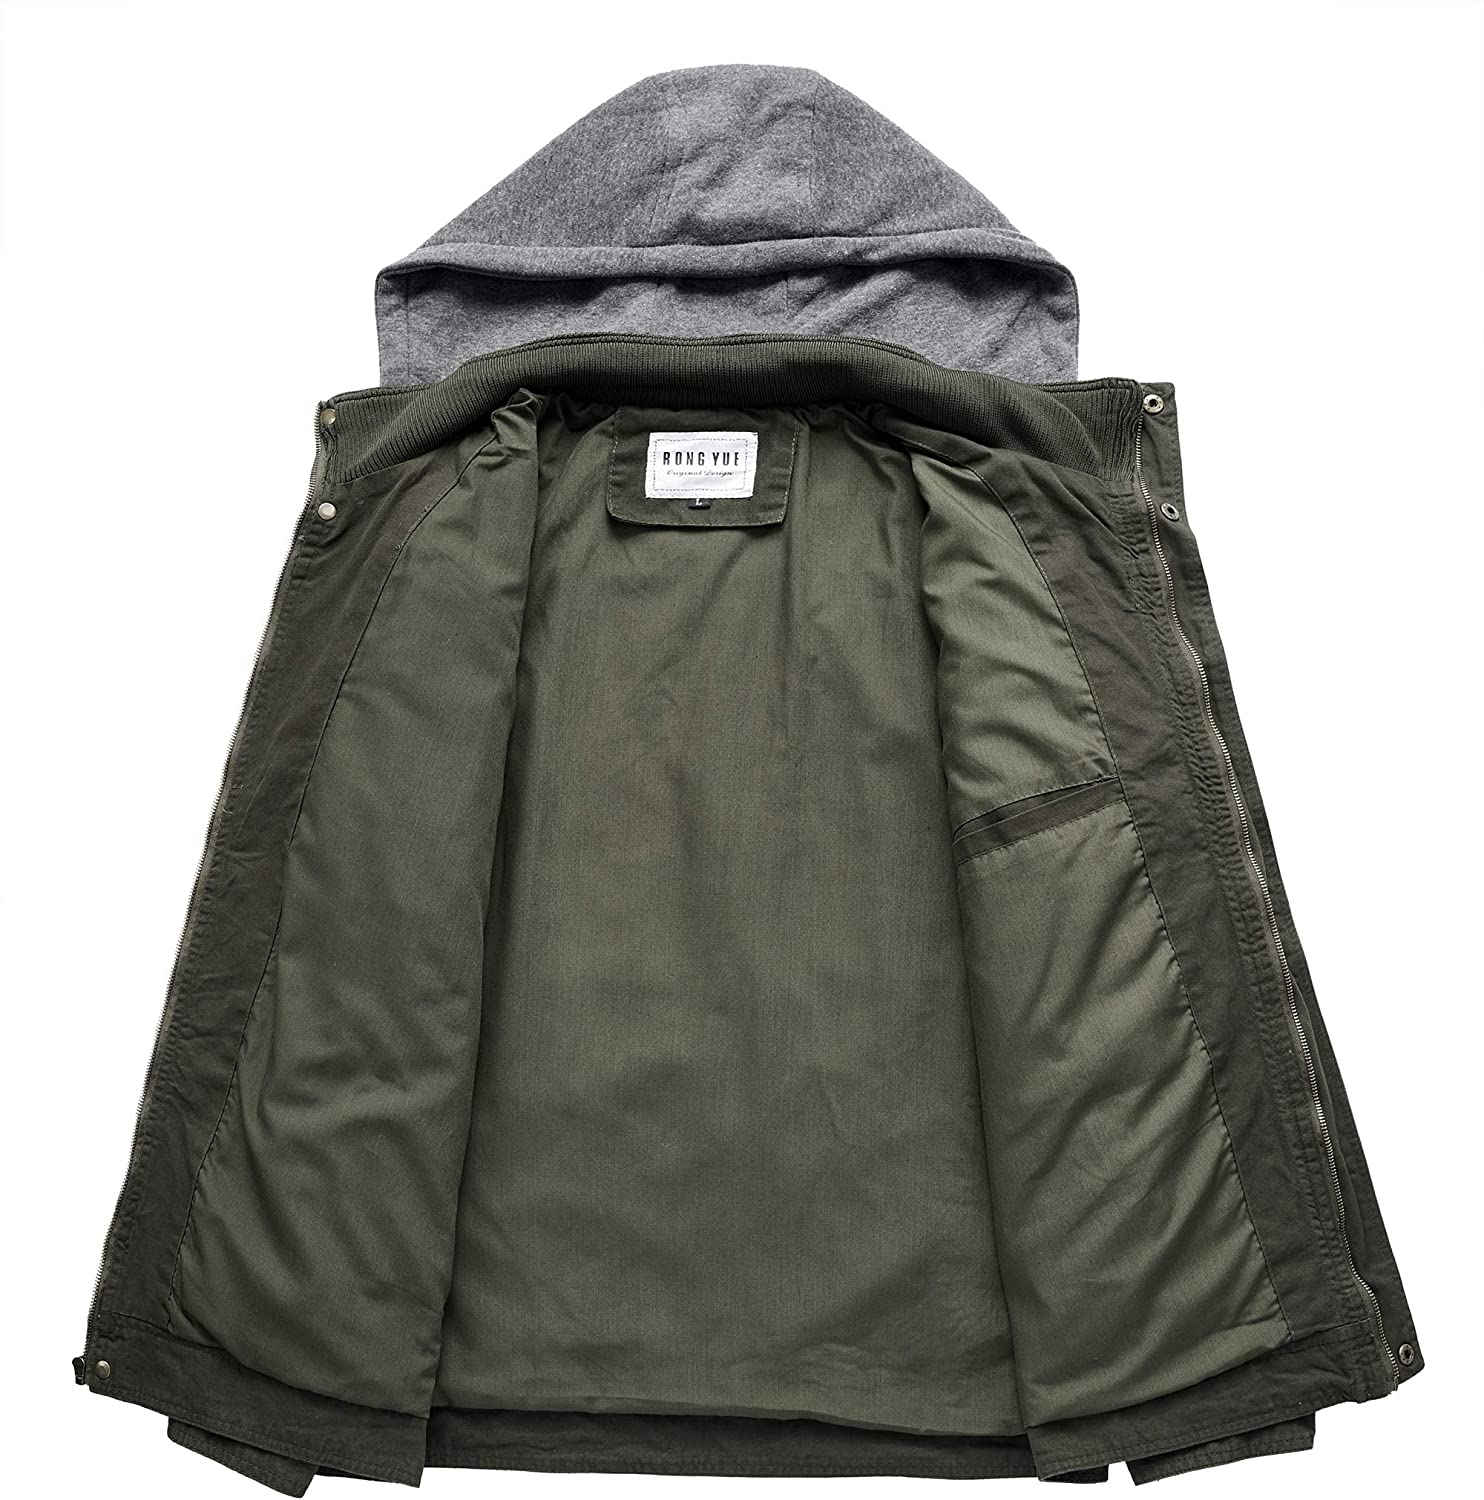 RongYue Mens Casual Cotton Military Windbreaker Jacket with Removable Hood